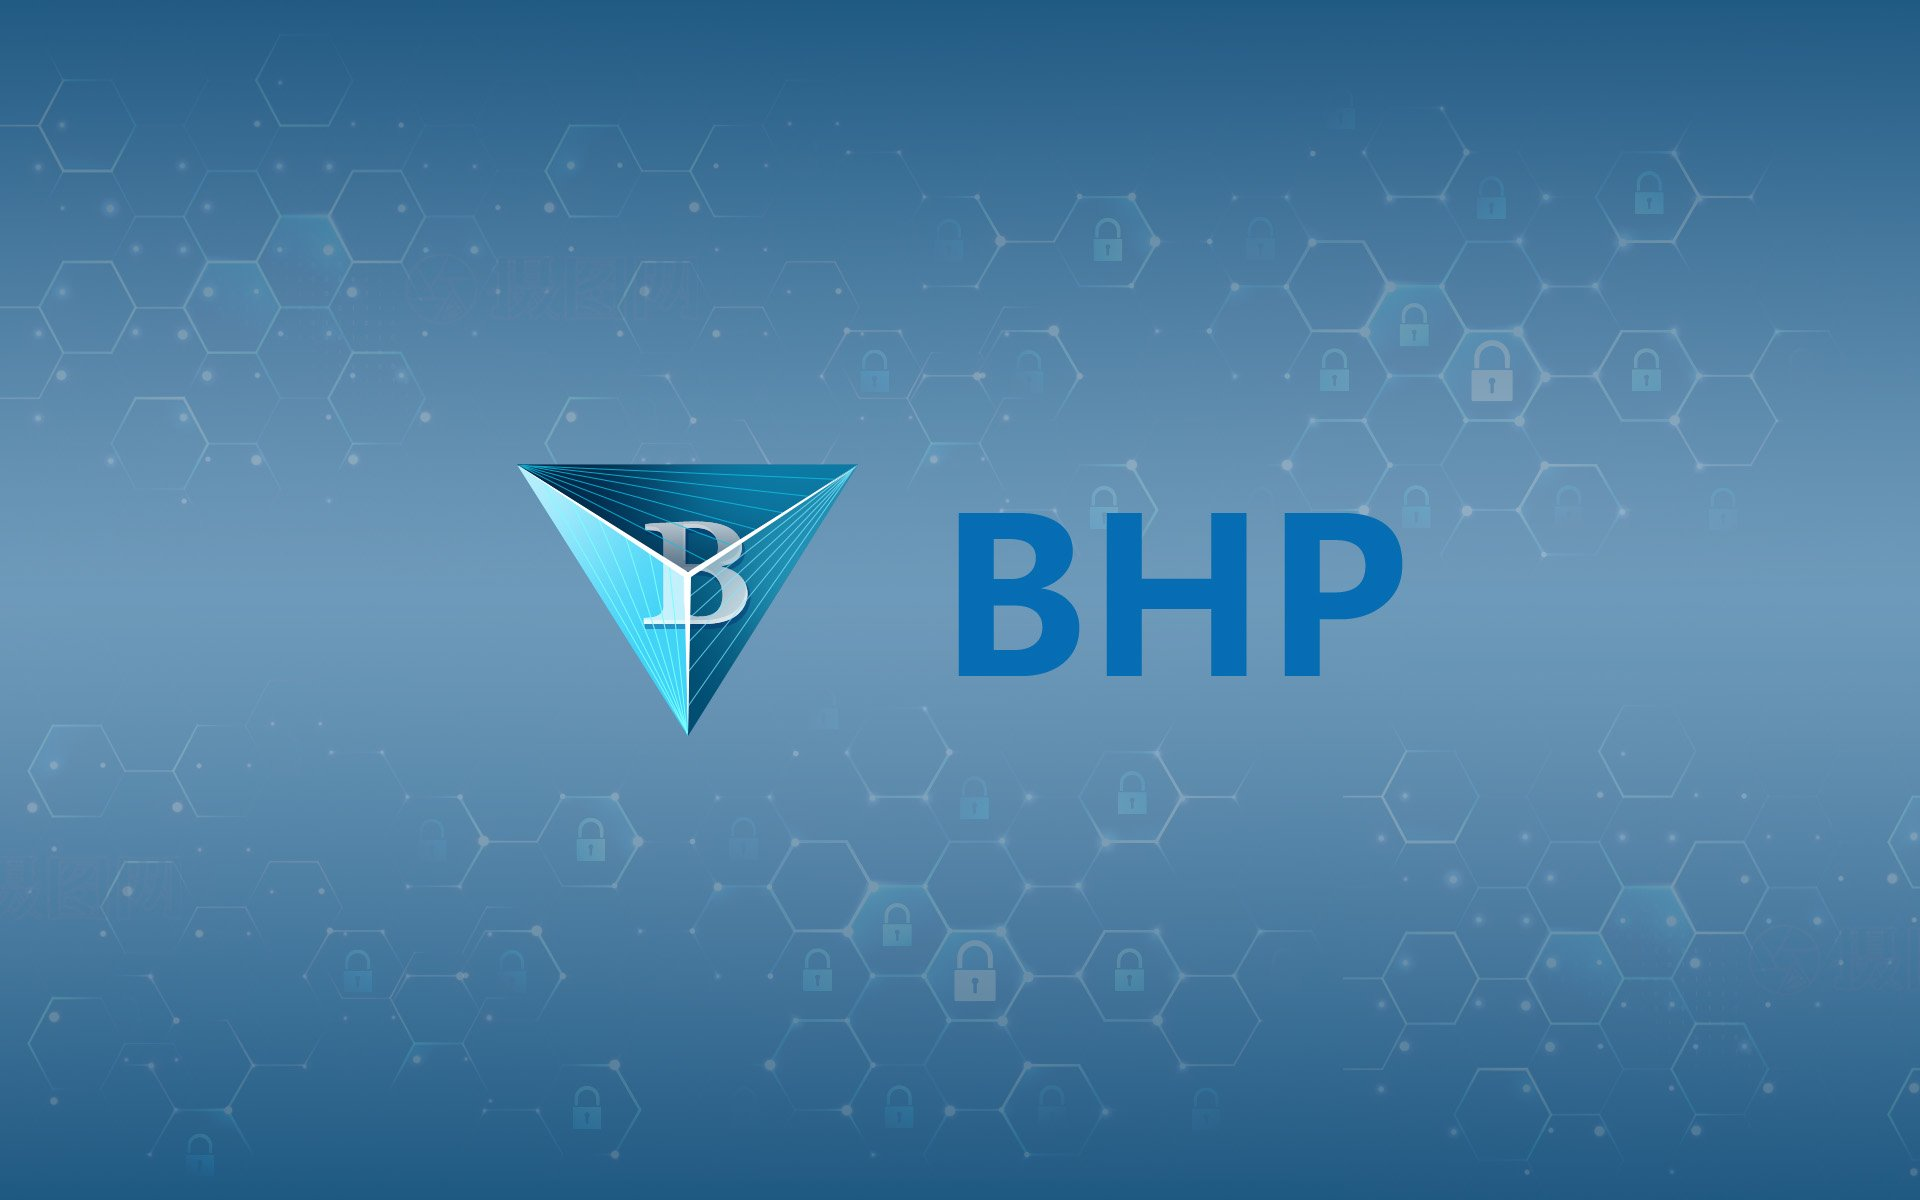 BHP Financial Group - Hash Power trusted Fintech